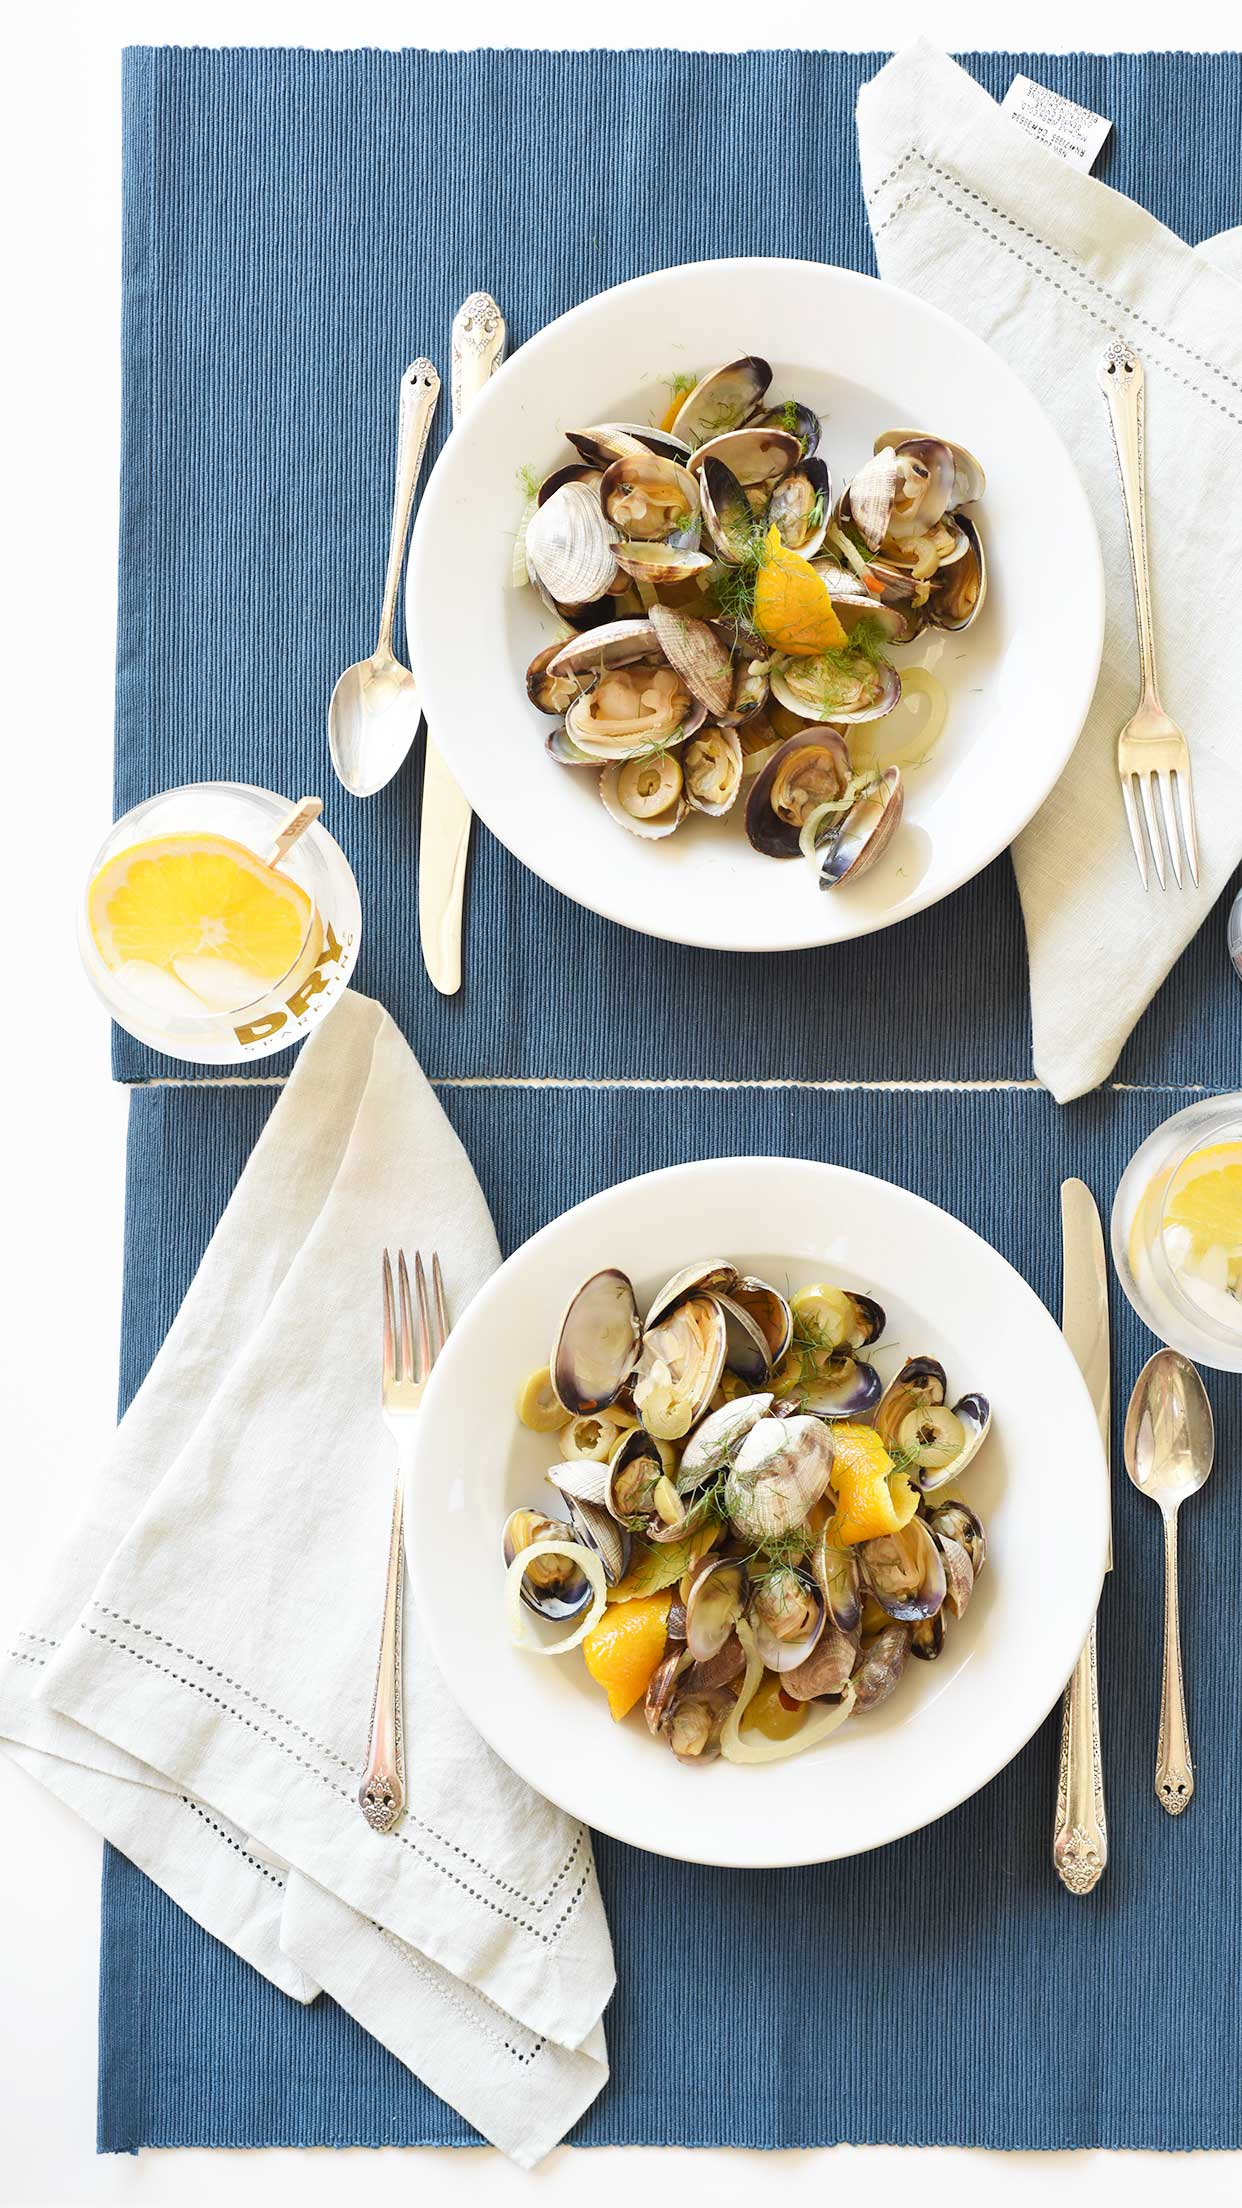 Ali Hedin | Citrus Steamed Clams